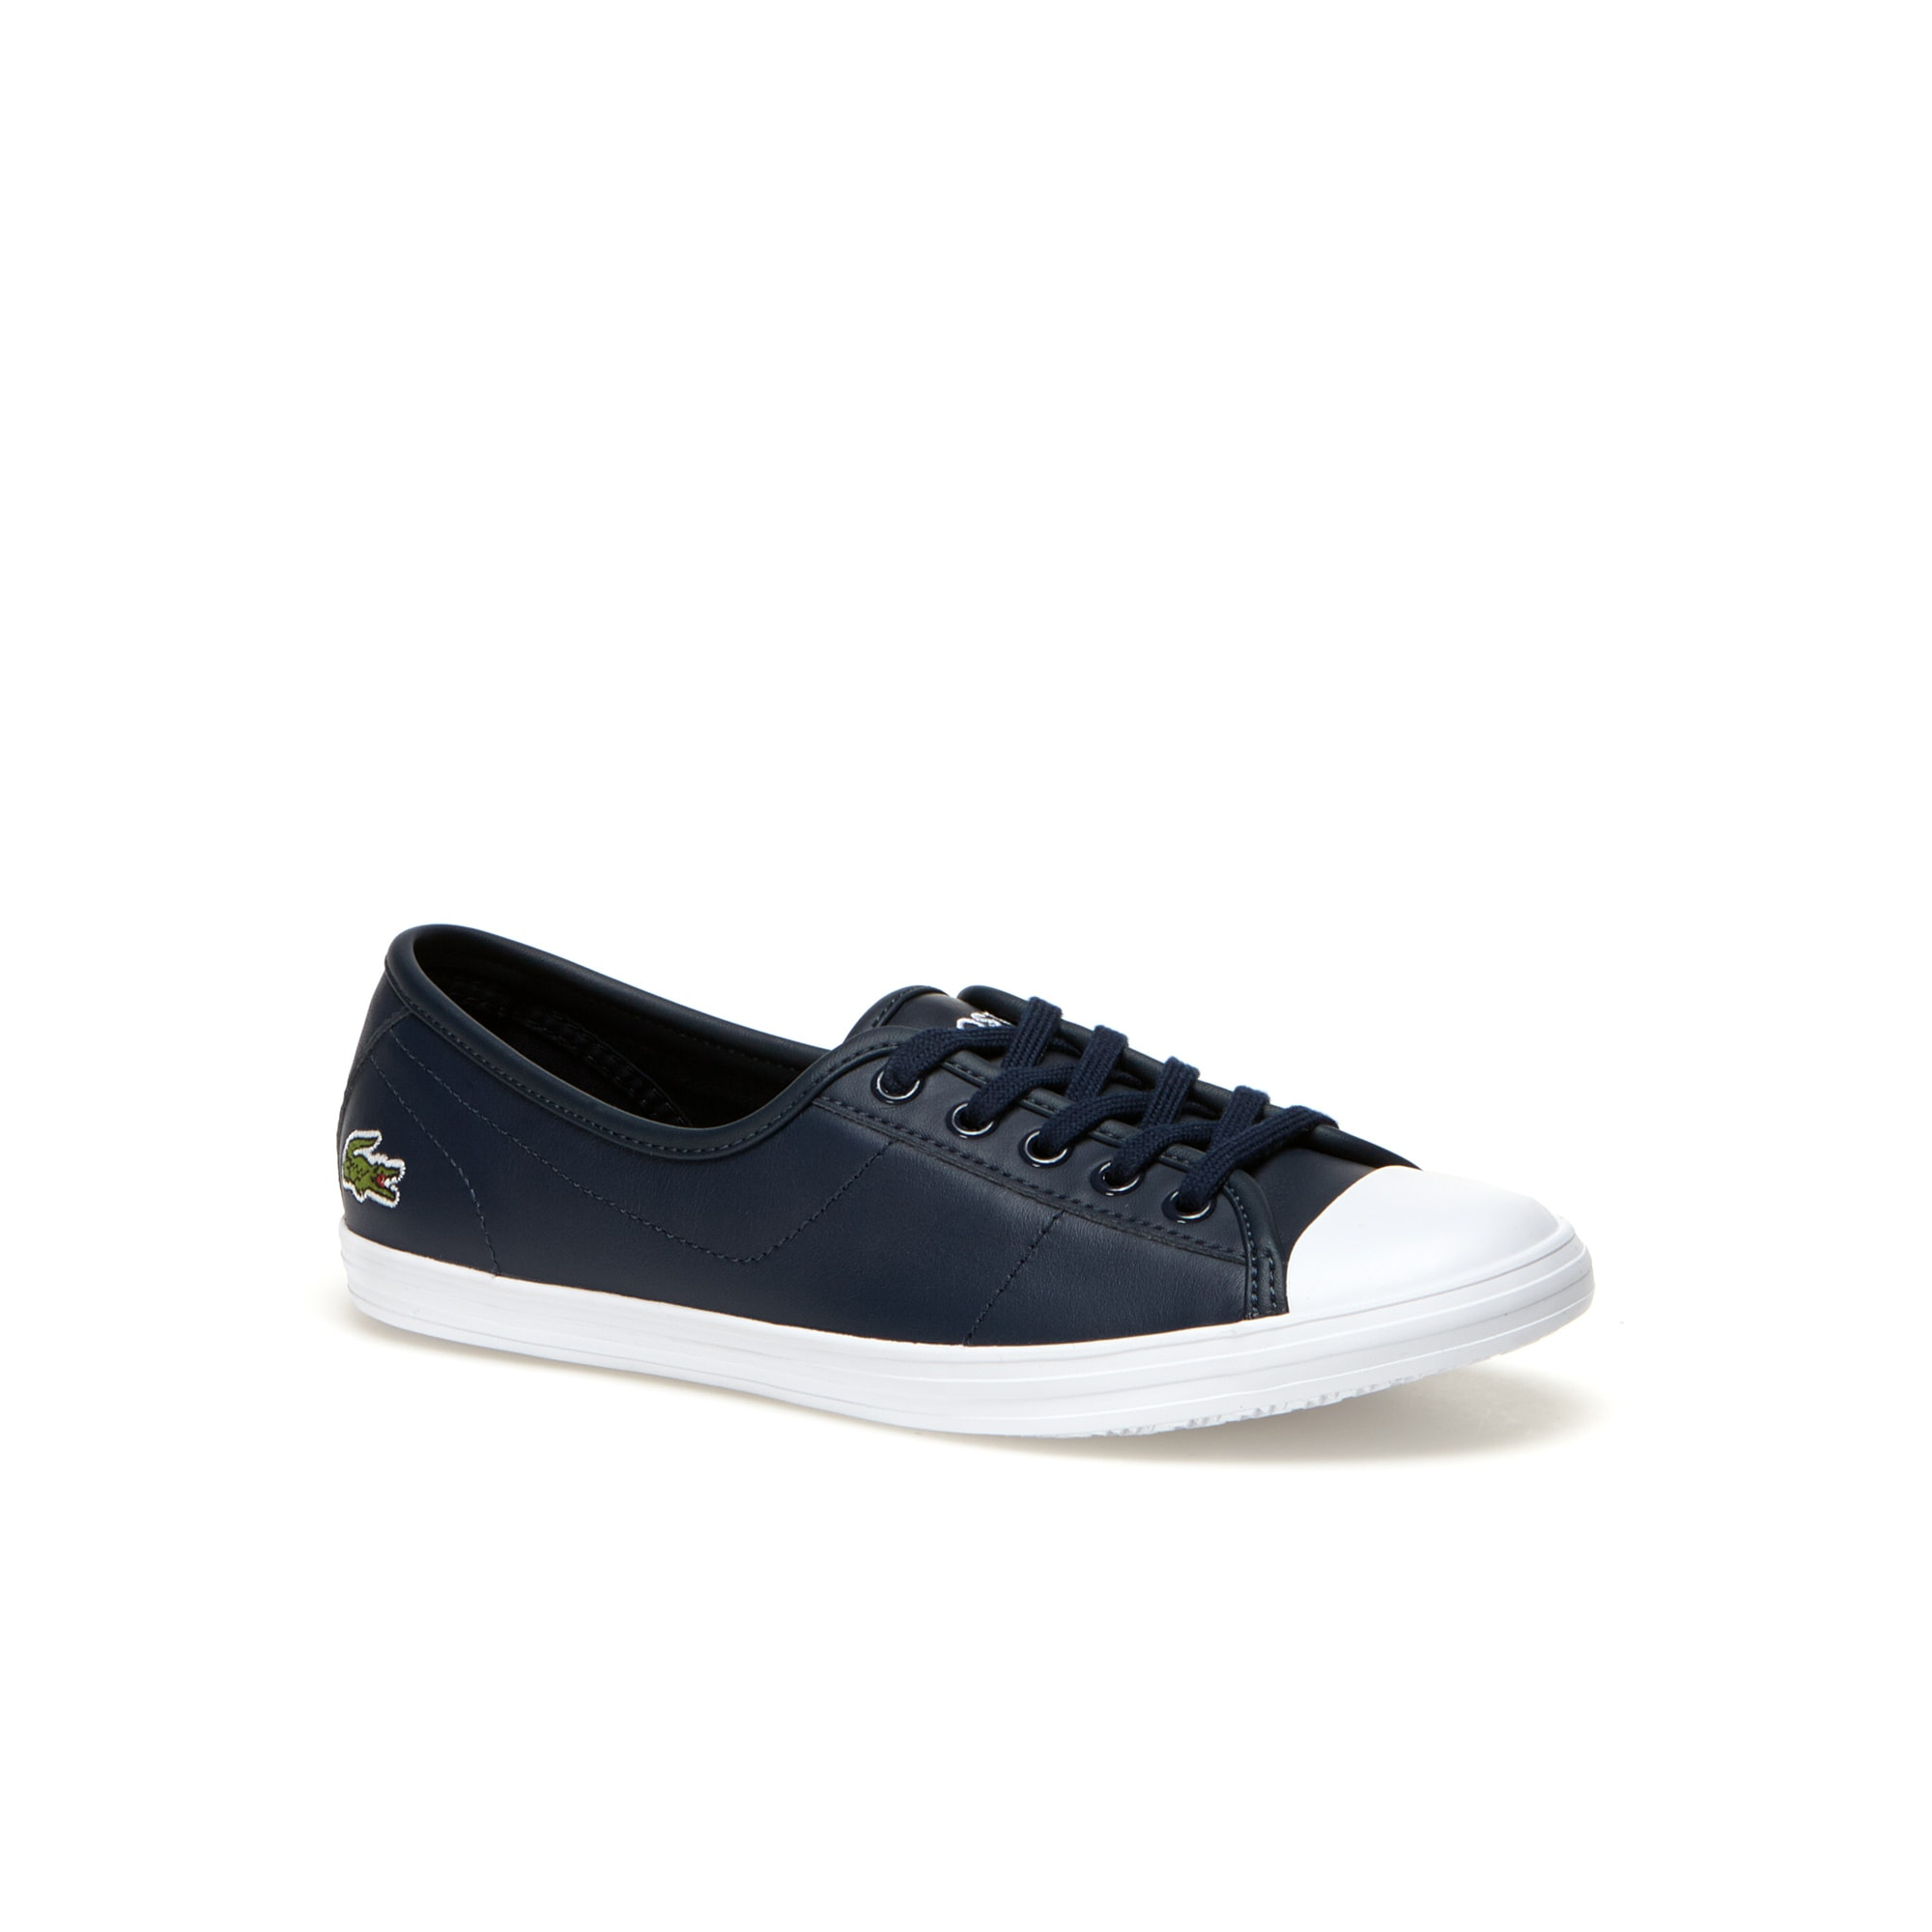 9756c3367 Woman s Ziane BL Leather Trainers